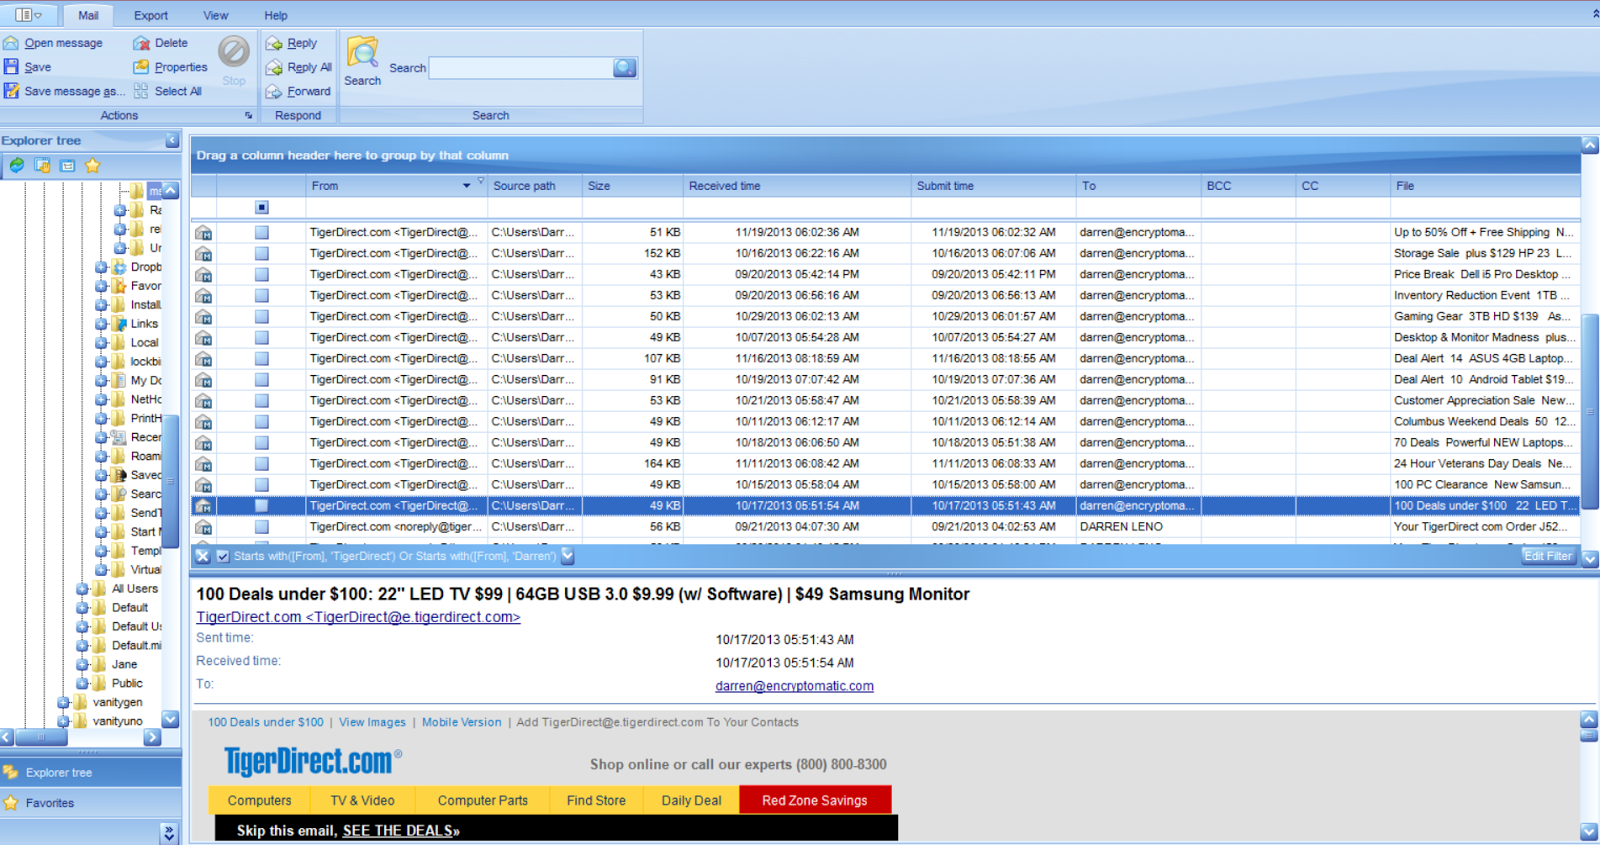 Main image screen of PstViewer Pro with messages in the mail list.